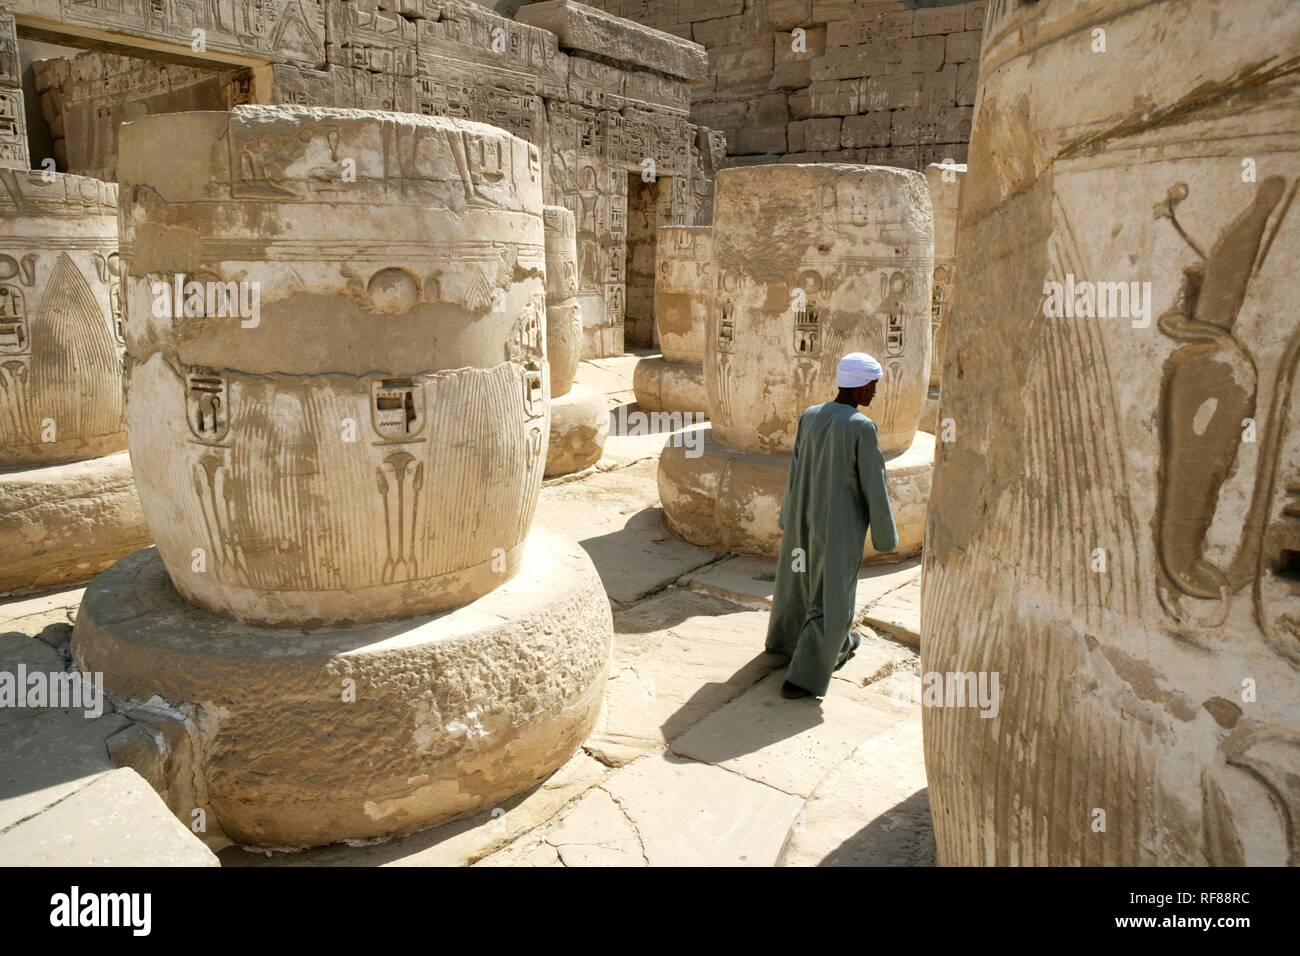 Guard, Medinet Habu, Mortuary Temple of Ramesses III, West Thebes, Luxor, Egypt, Africa Stock Photo